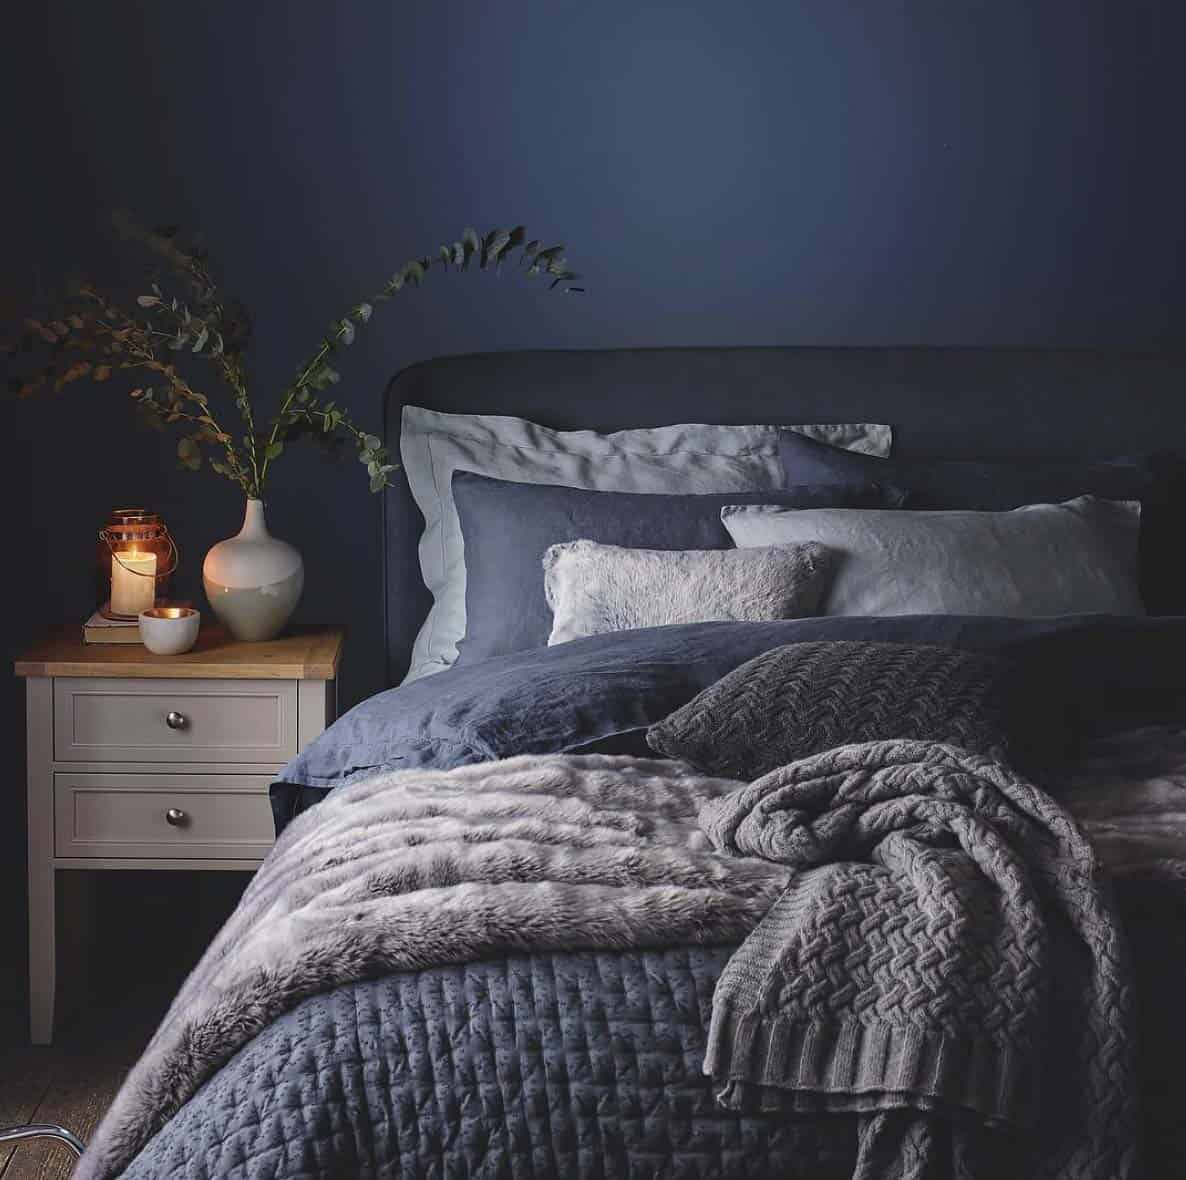 33 ultra cozy bedroom decorating ideas for winter warmth Blue and brown bedroom ideas for decorating